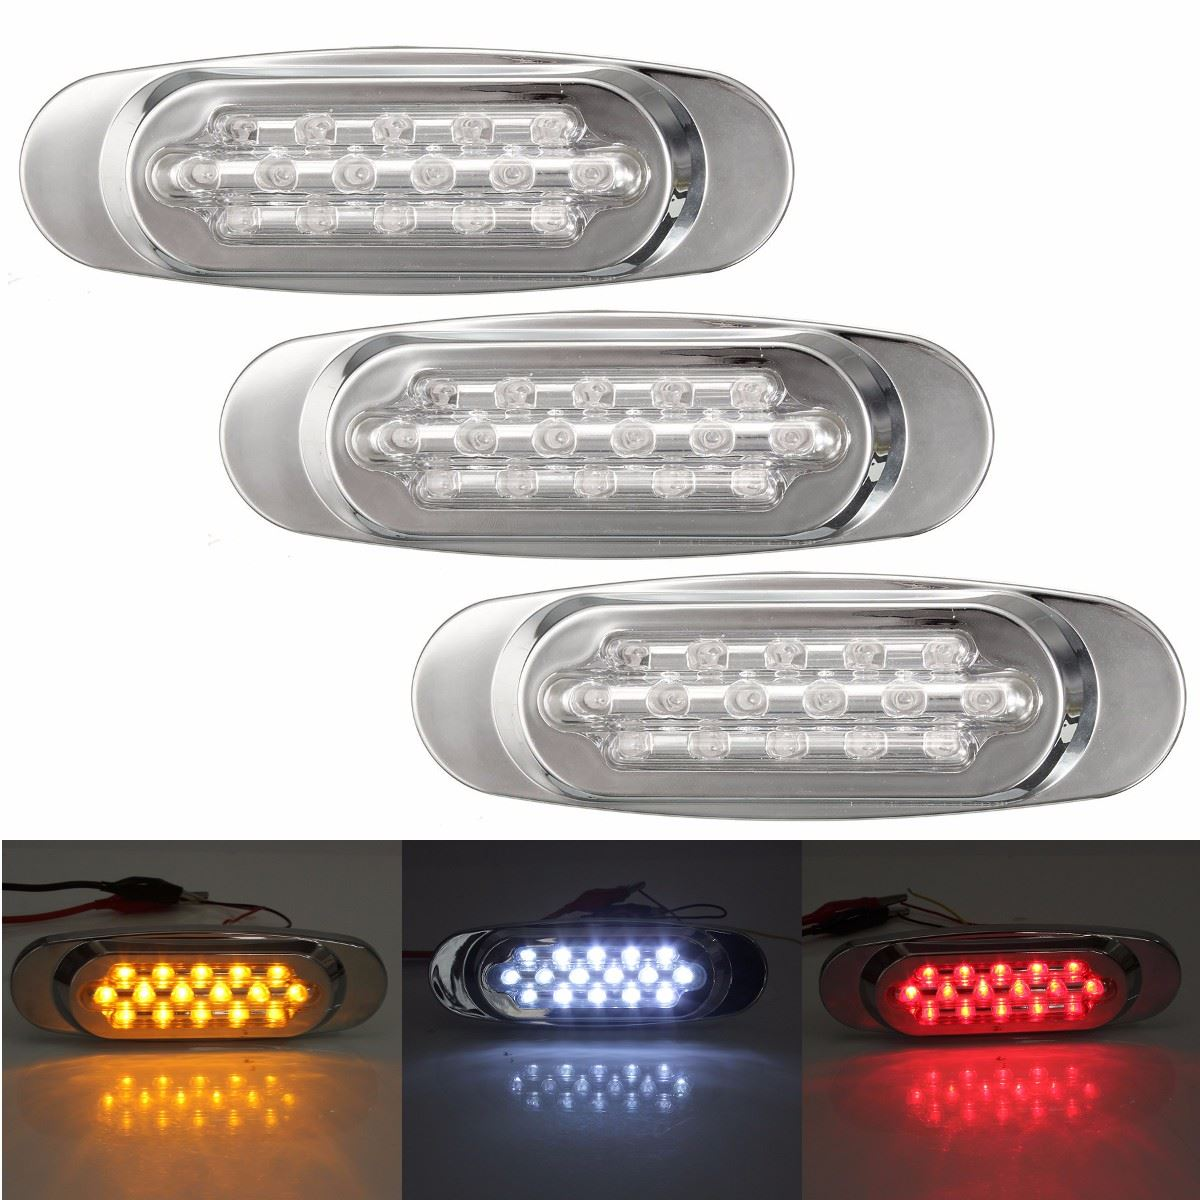 12V Waterproof 16 LED Beads Car Trailer Truck Edge Side Marker Clearance Lights Straight Bulb Warning Lamp Caravan Parking Light купить